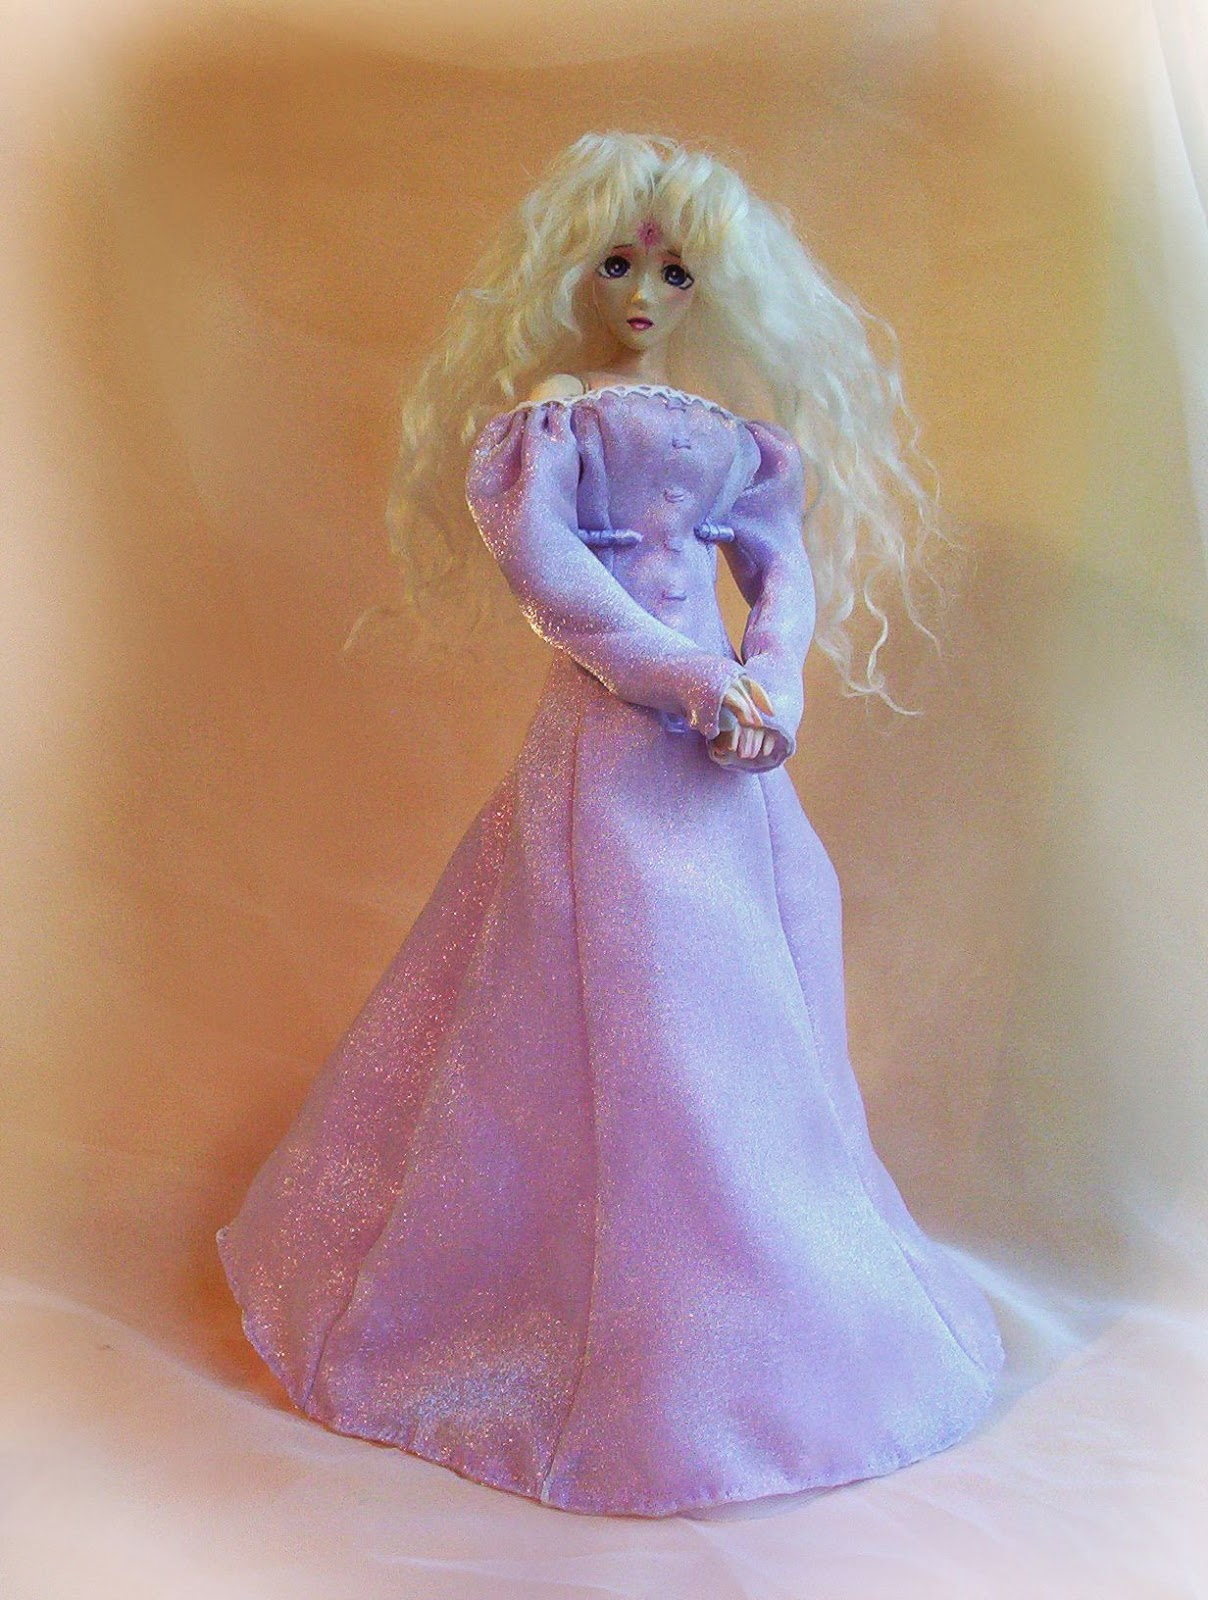 porcelain ball jointed doll last unicorn full costumed doll